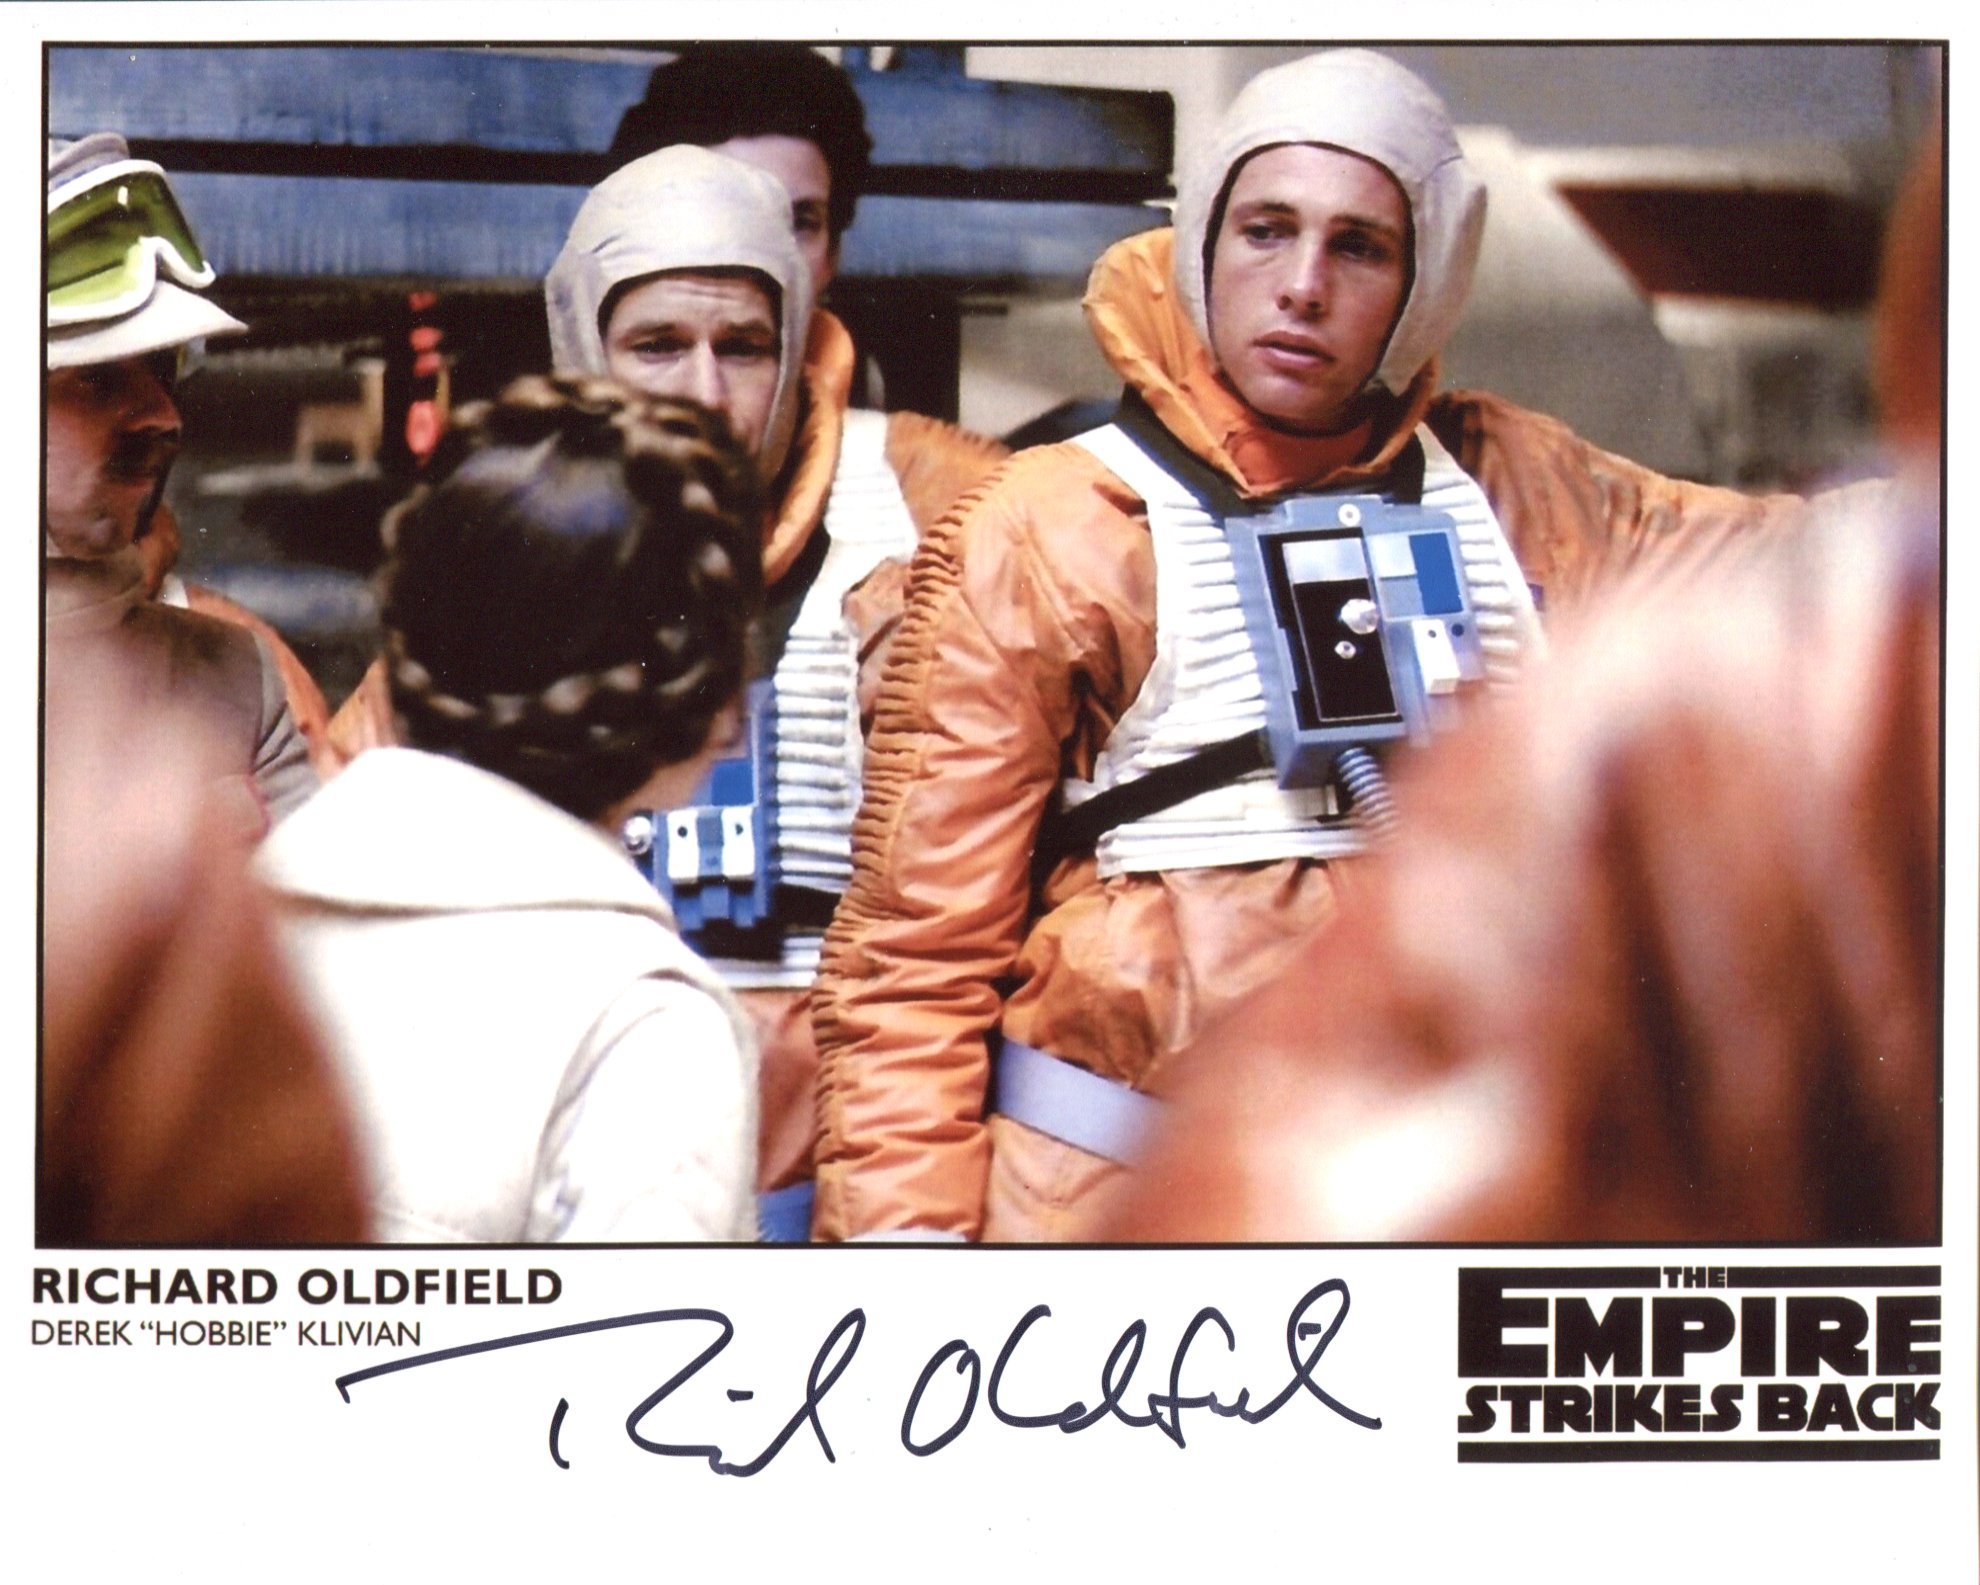 Star Wars 8x10 photo from Return of the Jedi, signed by B-Wing pilot Richard Oldfield. Good